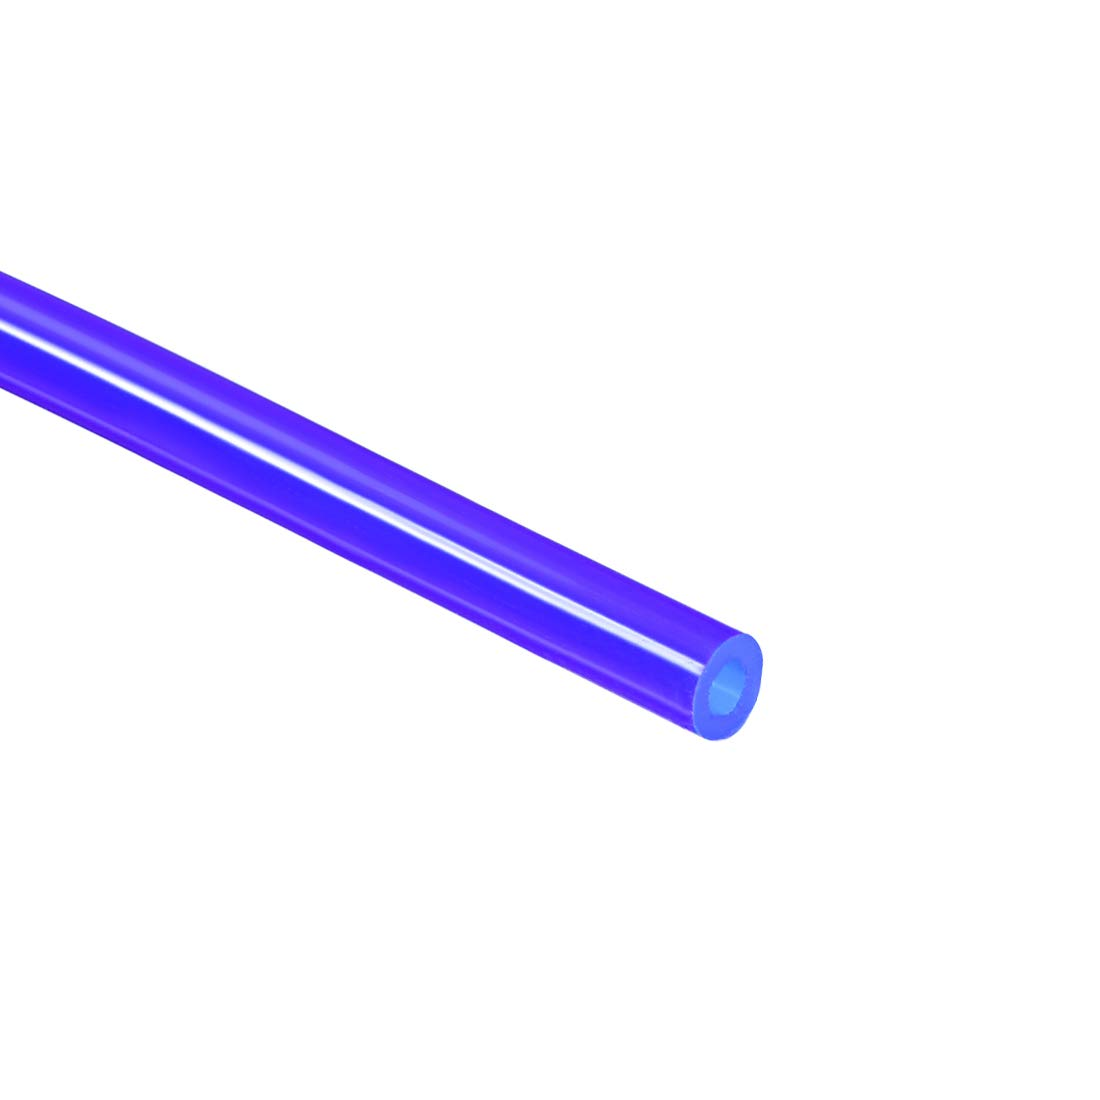 uxcell Silicone Tubing 1/8